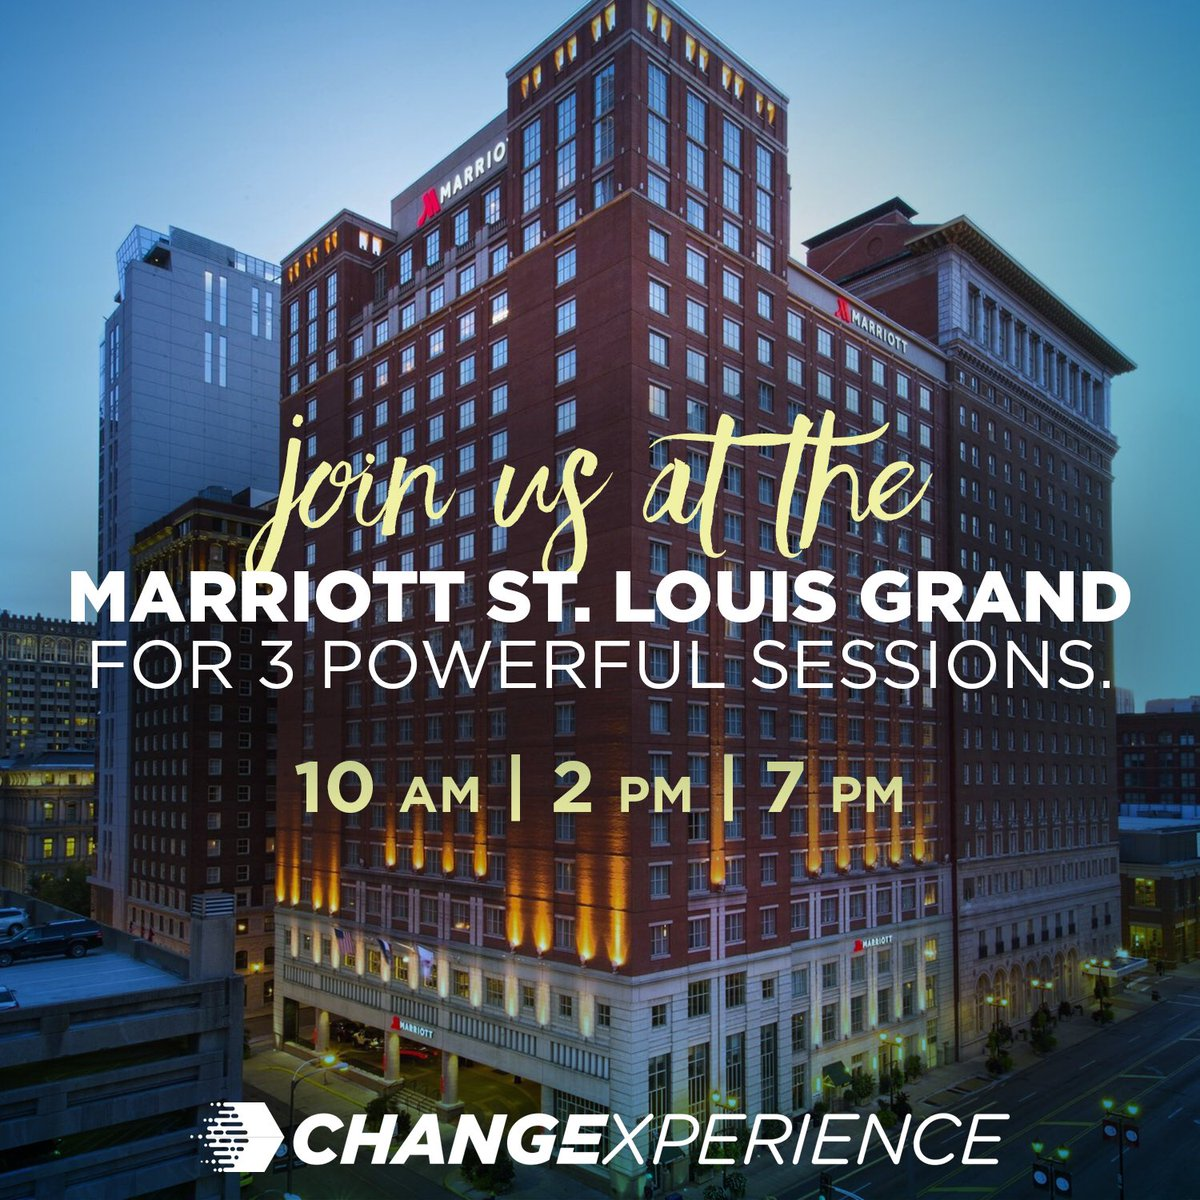 Change Experience 2019 St.Louis is happening RIGHT NOW! We're at the Marriott St. Louis Grand, 10am, 2pm, and 7pm. All sessions are FREE. Text ChangeStLouis to 51555 or click here …https://changeexperience2019stlouis.eventbrite.com   #ChangeExperience #WorldChangers          #WorldChangersChurchInternational